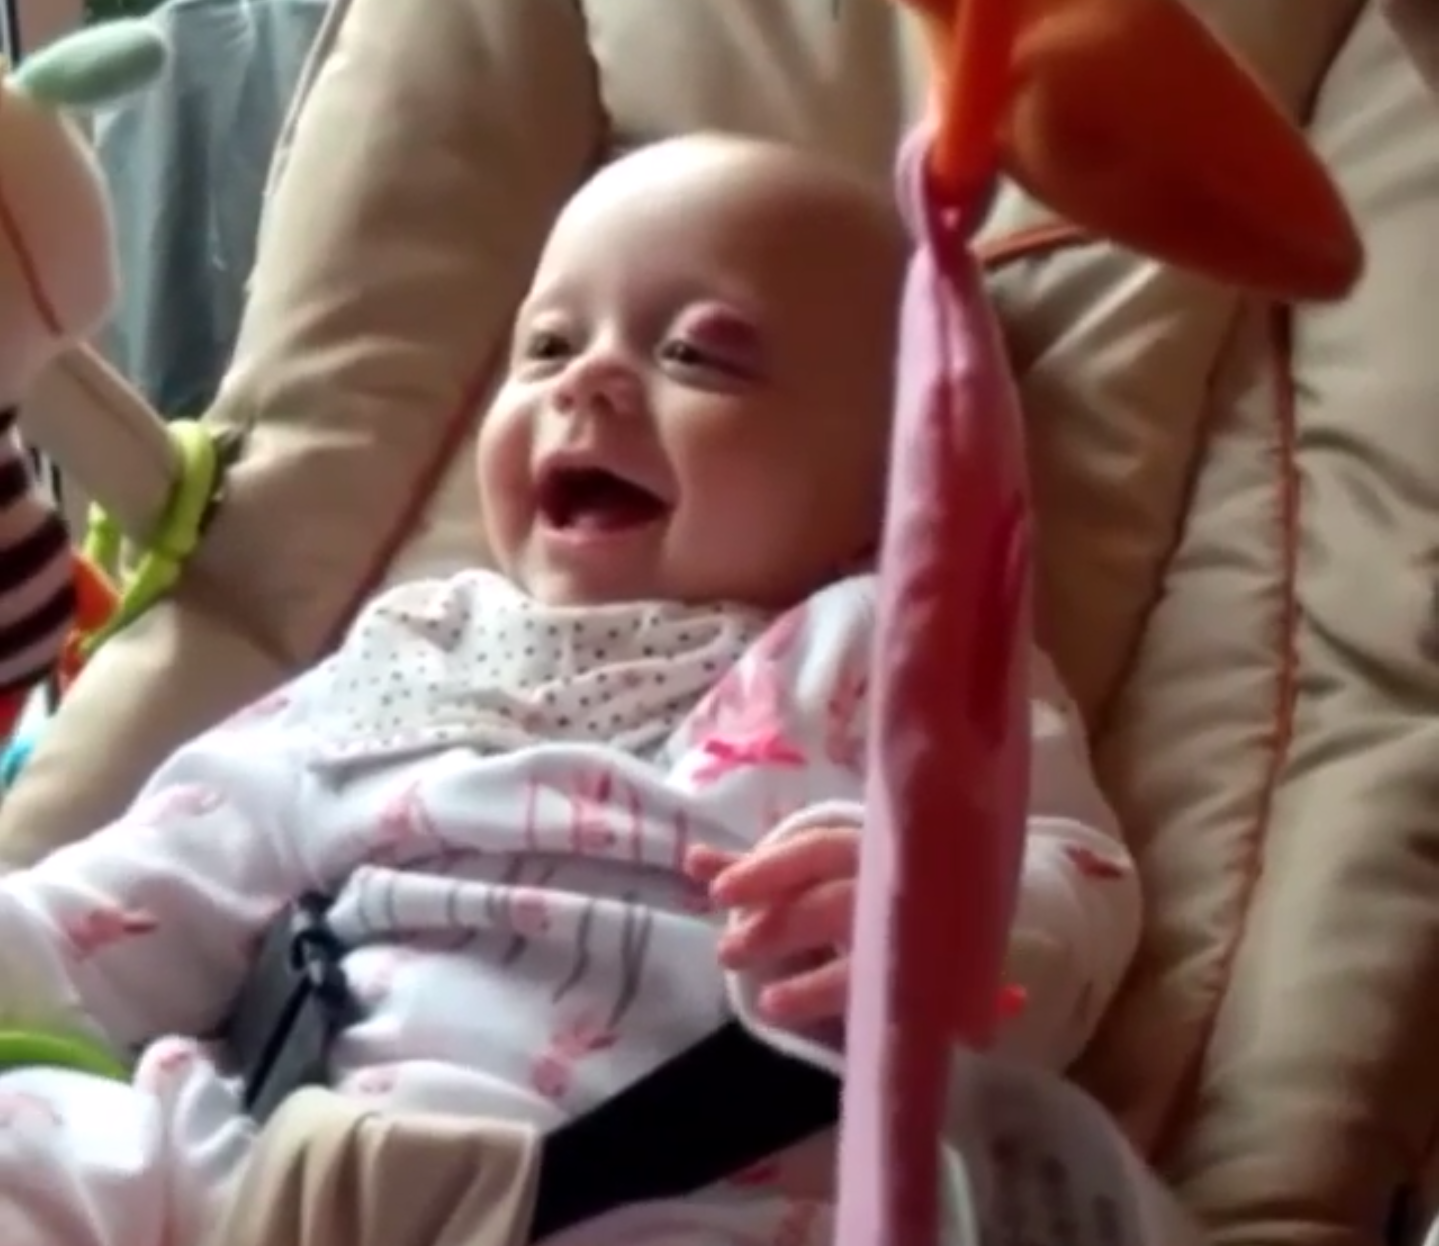 Her Aldi bouncer chair